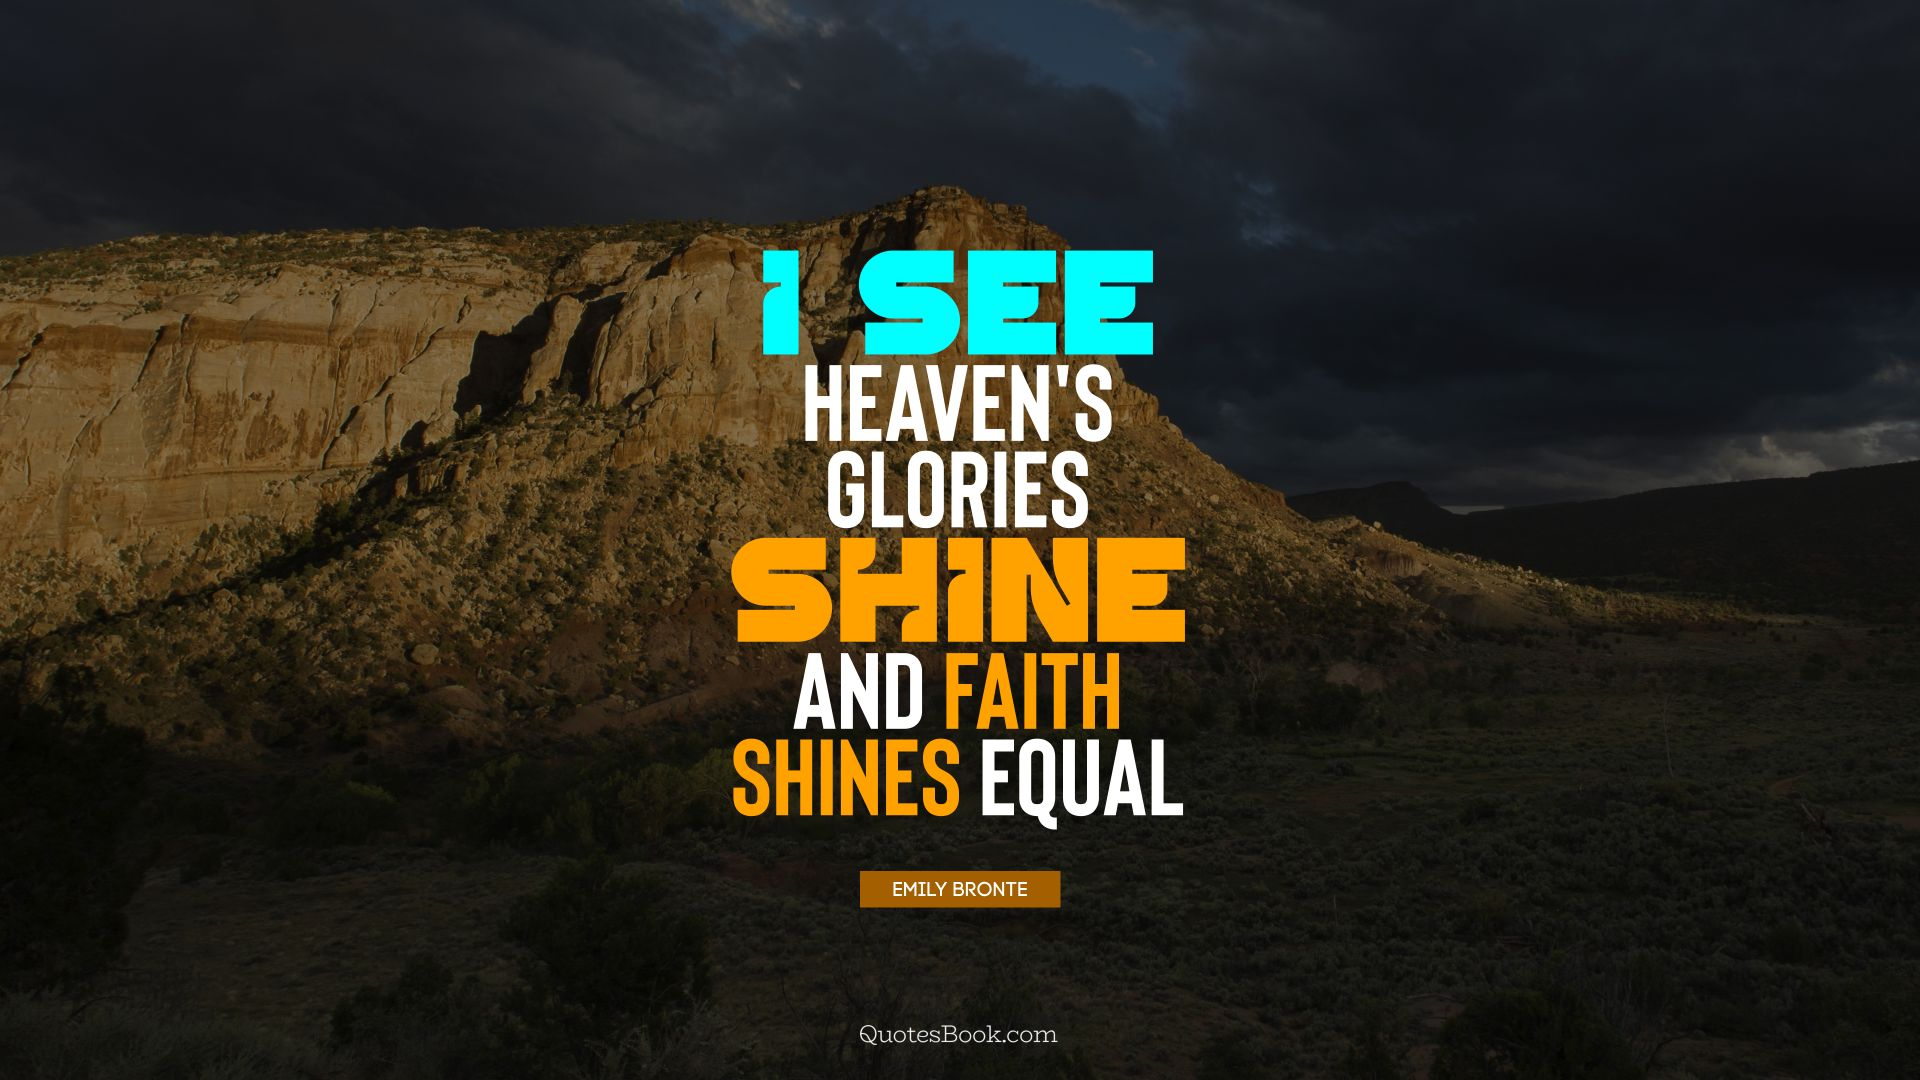 I see heaven's glories shine and faith shines equal. - Quote by Emily Bronte